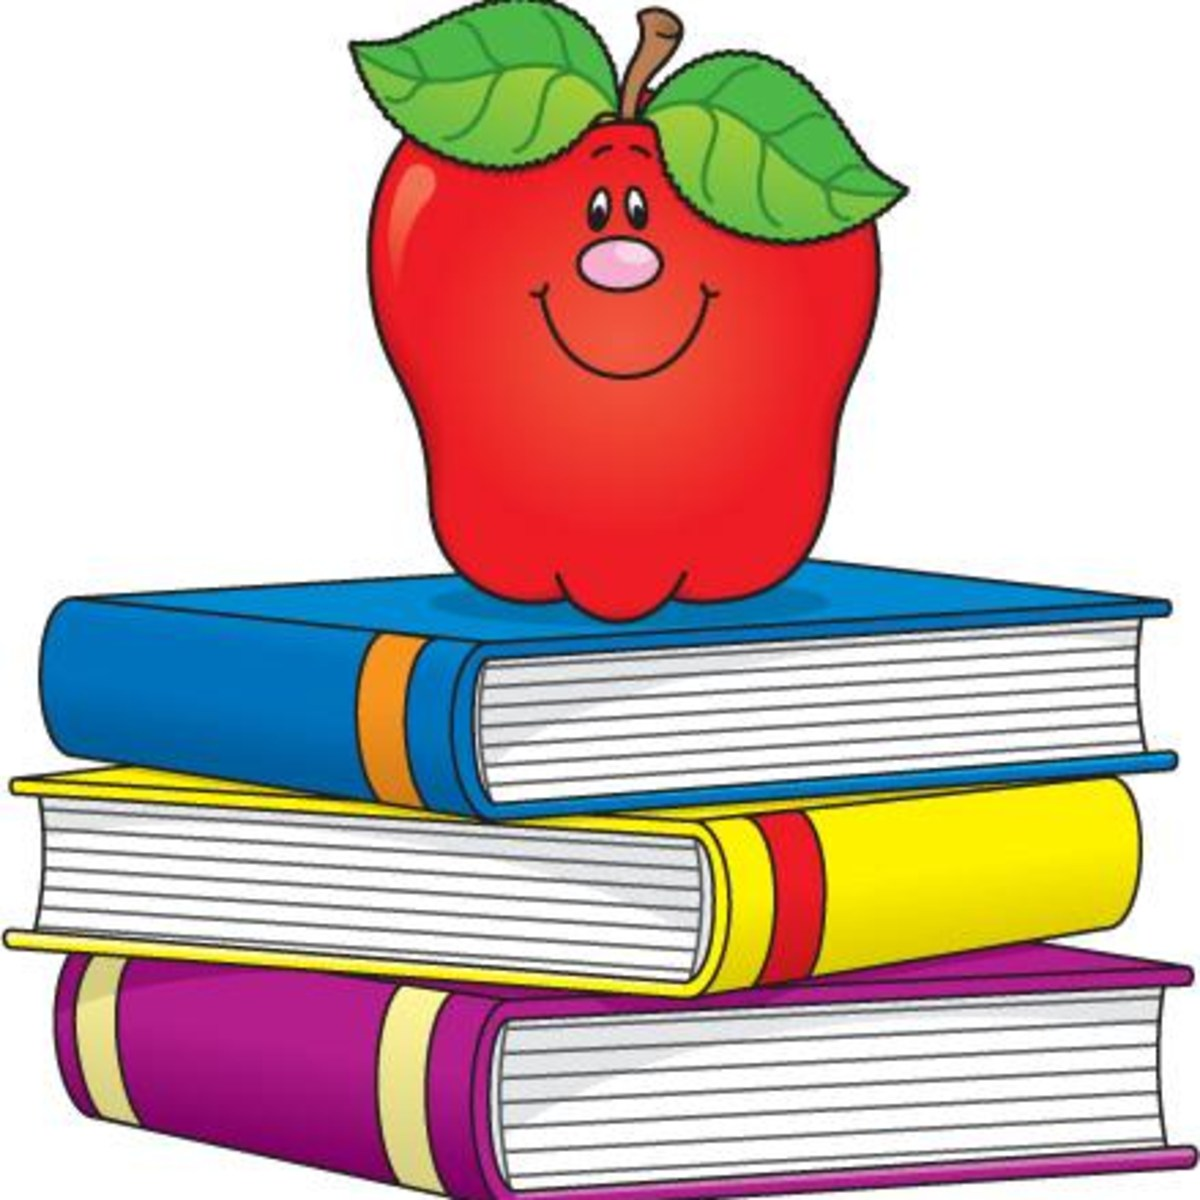 School book clipart 2 » Clipart Station.